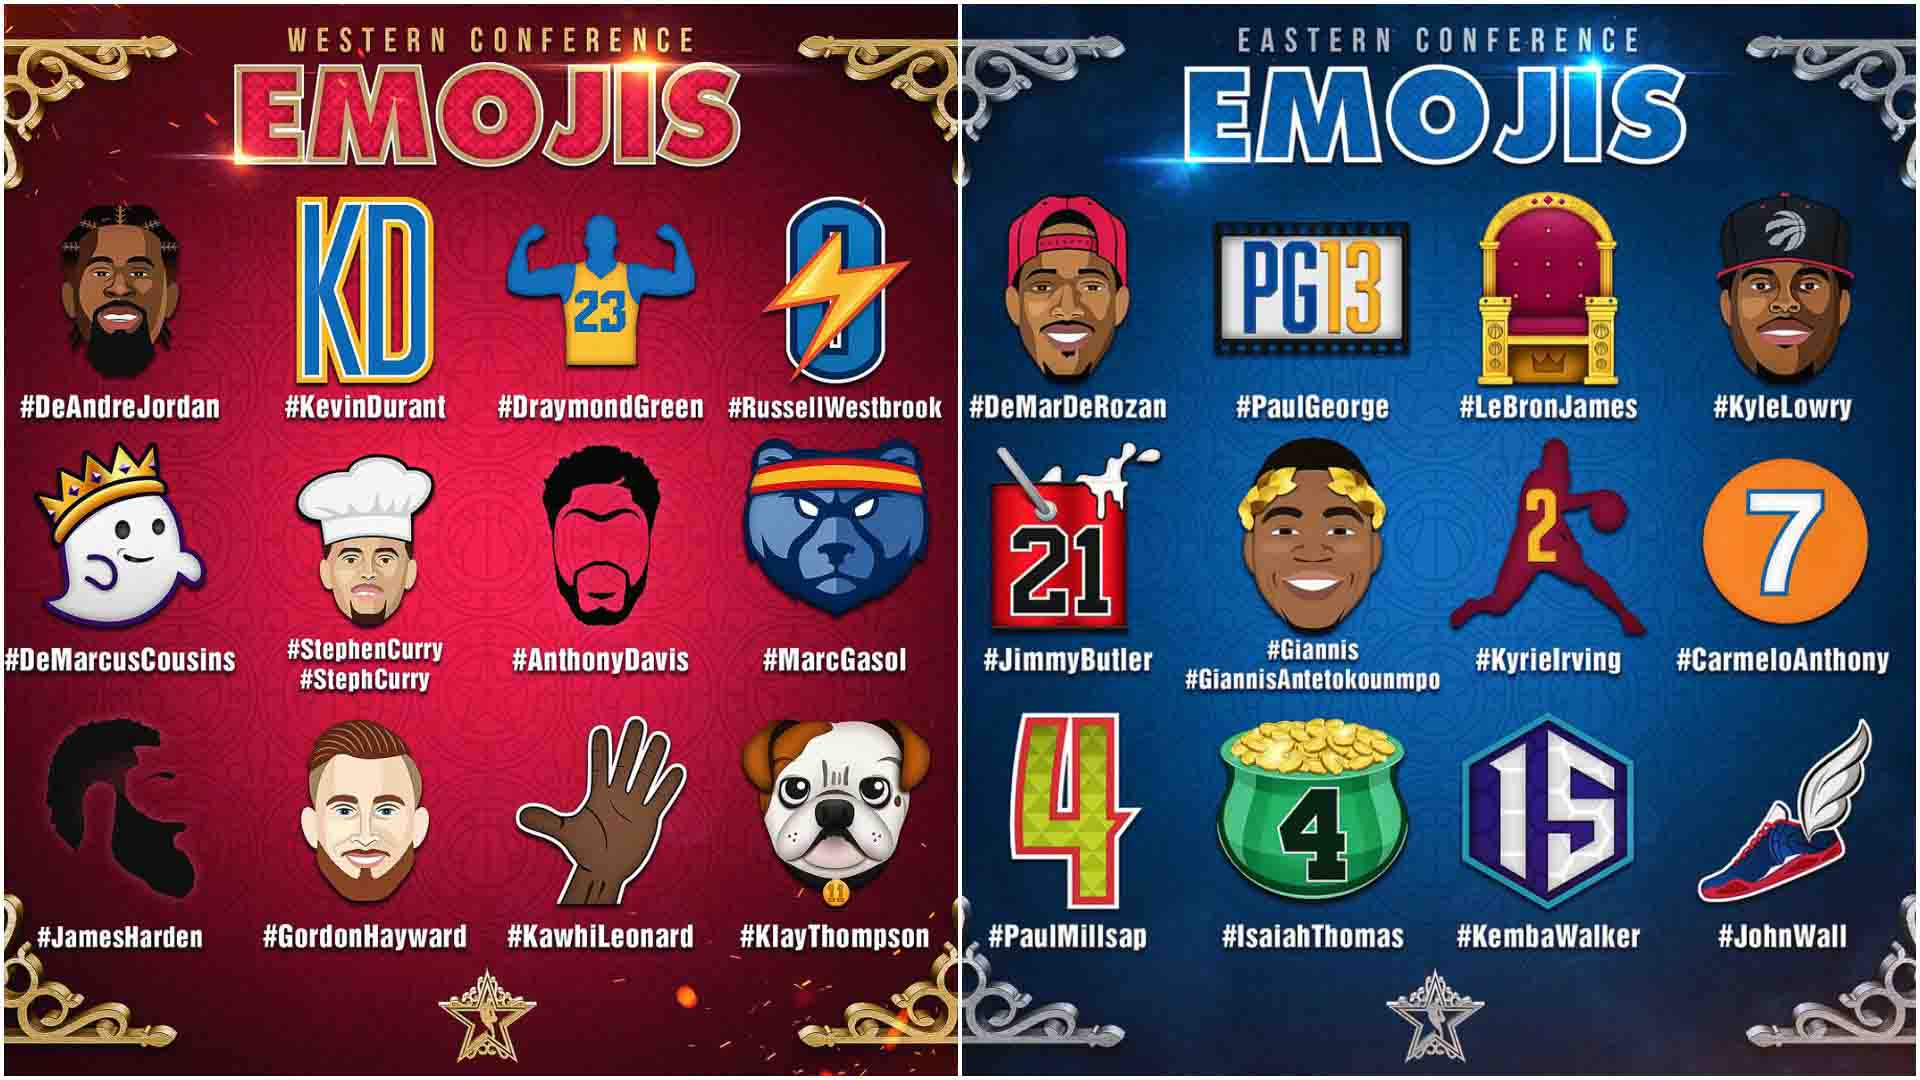 Time To Get Emoji About 2017 NBA All-Star Weekend